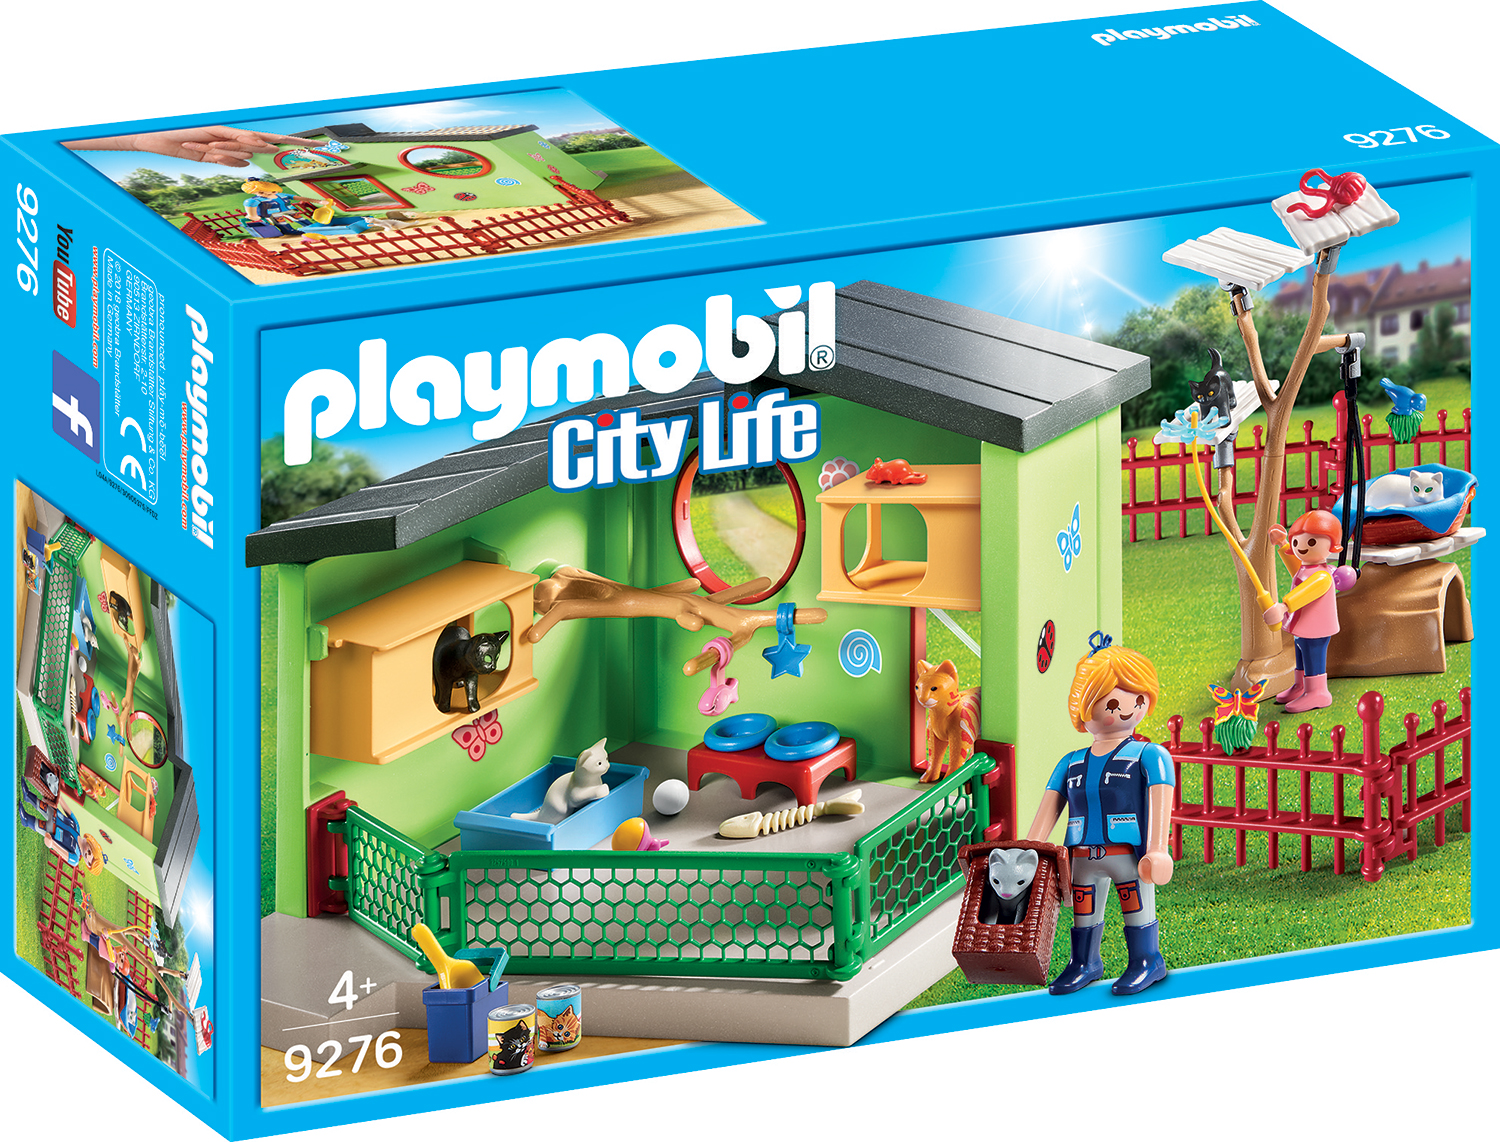 Crescatorie de pisicute playmobil city life